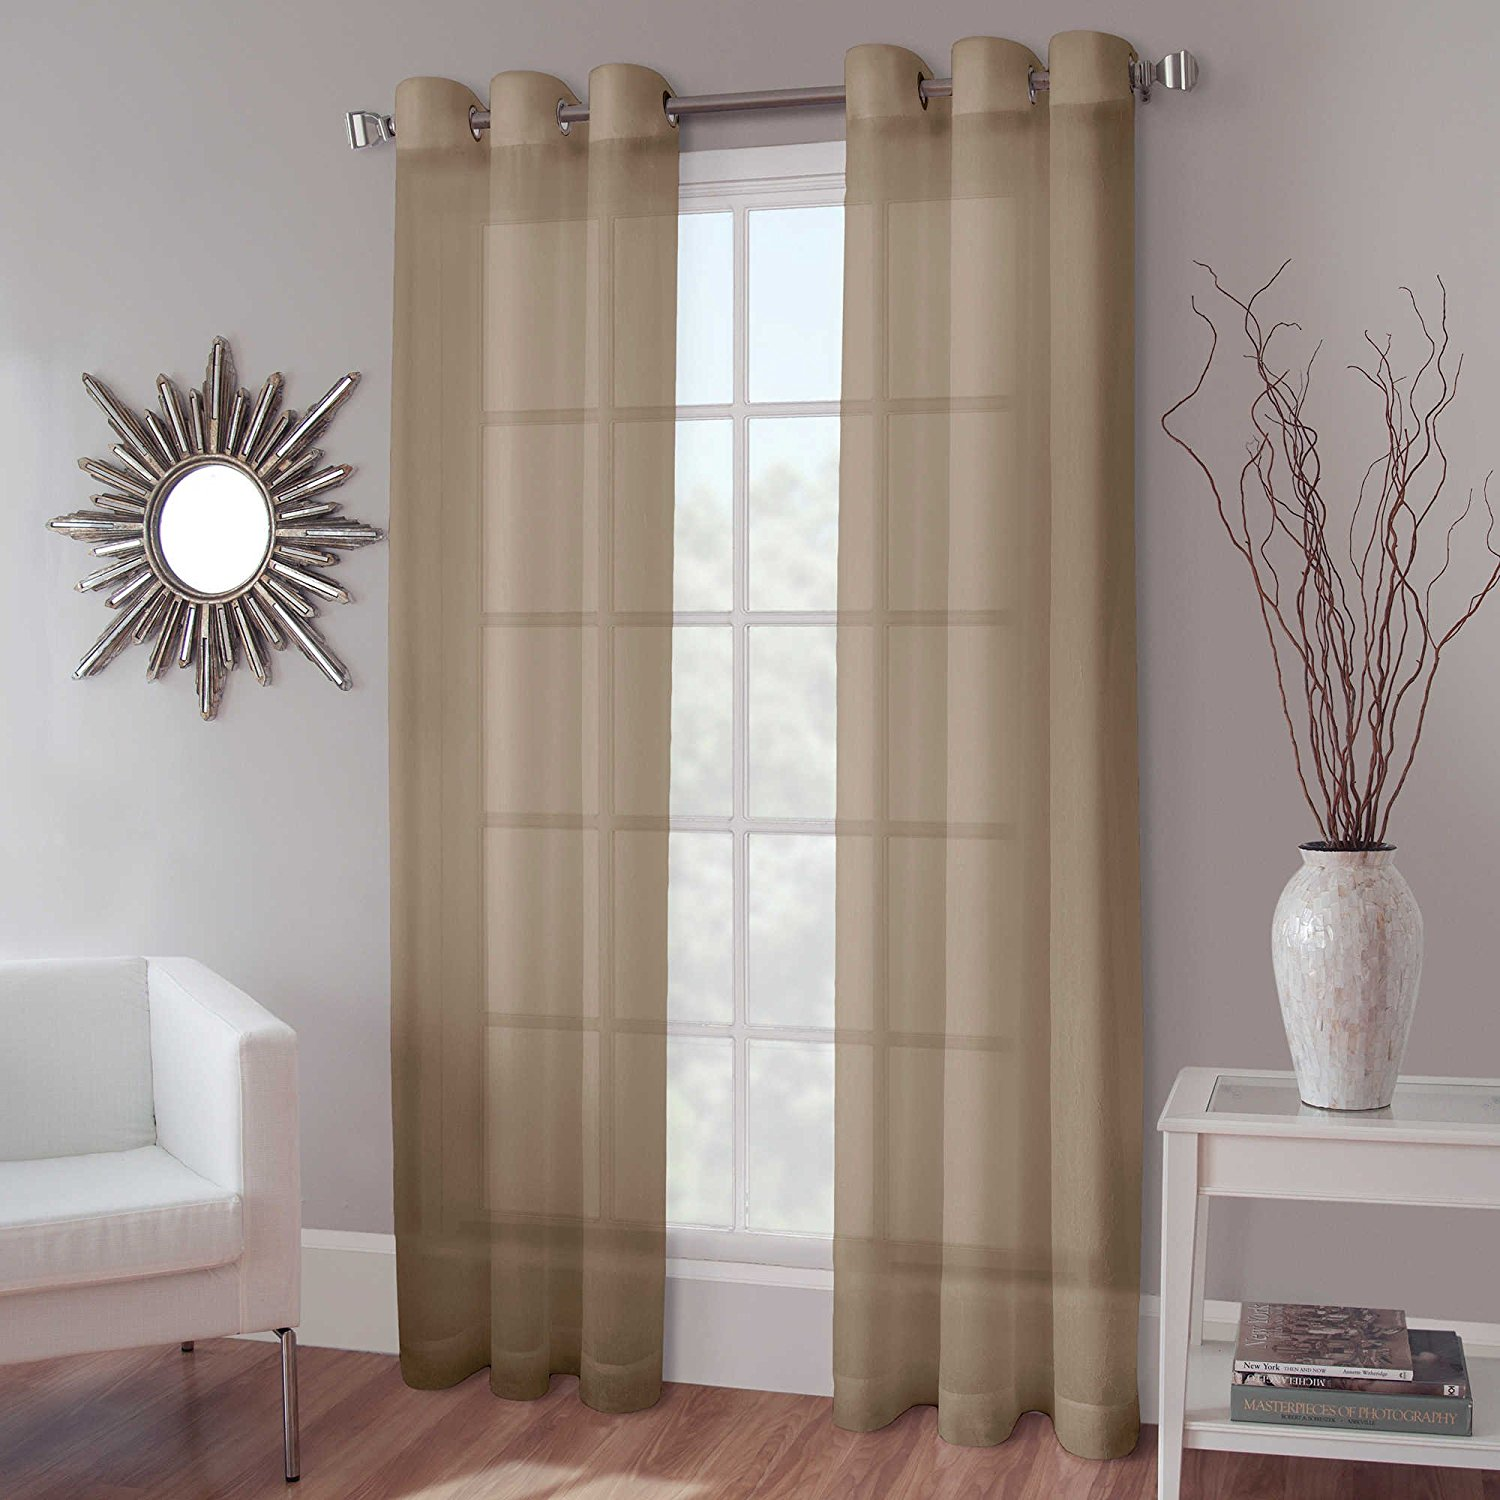 1 panel mira solid taupe tan semi sheer window faux silk antique bronze grommets curtain drapes - Sheer Drapes